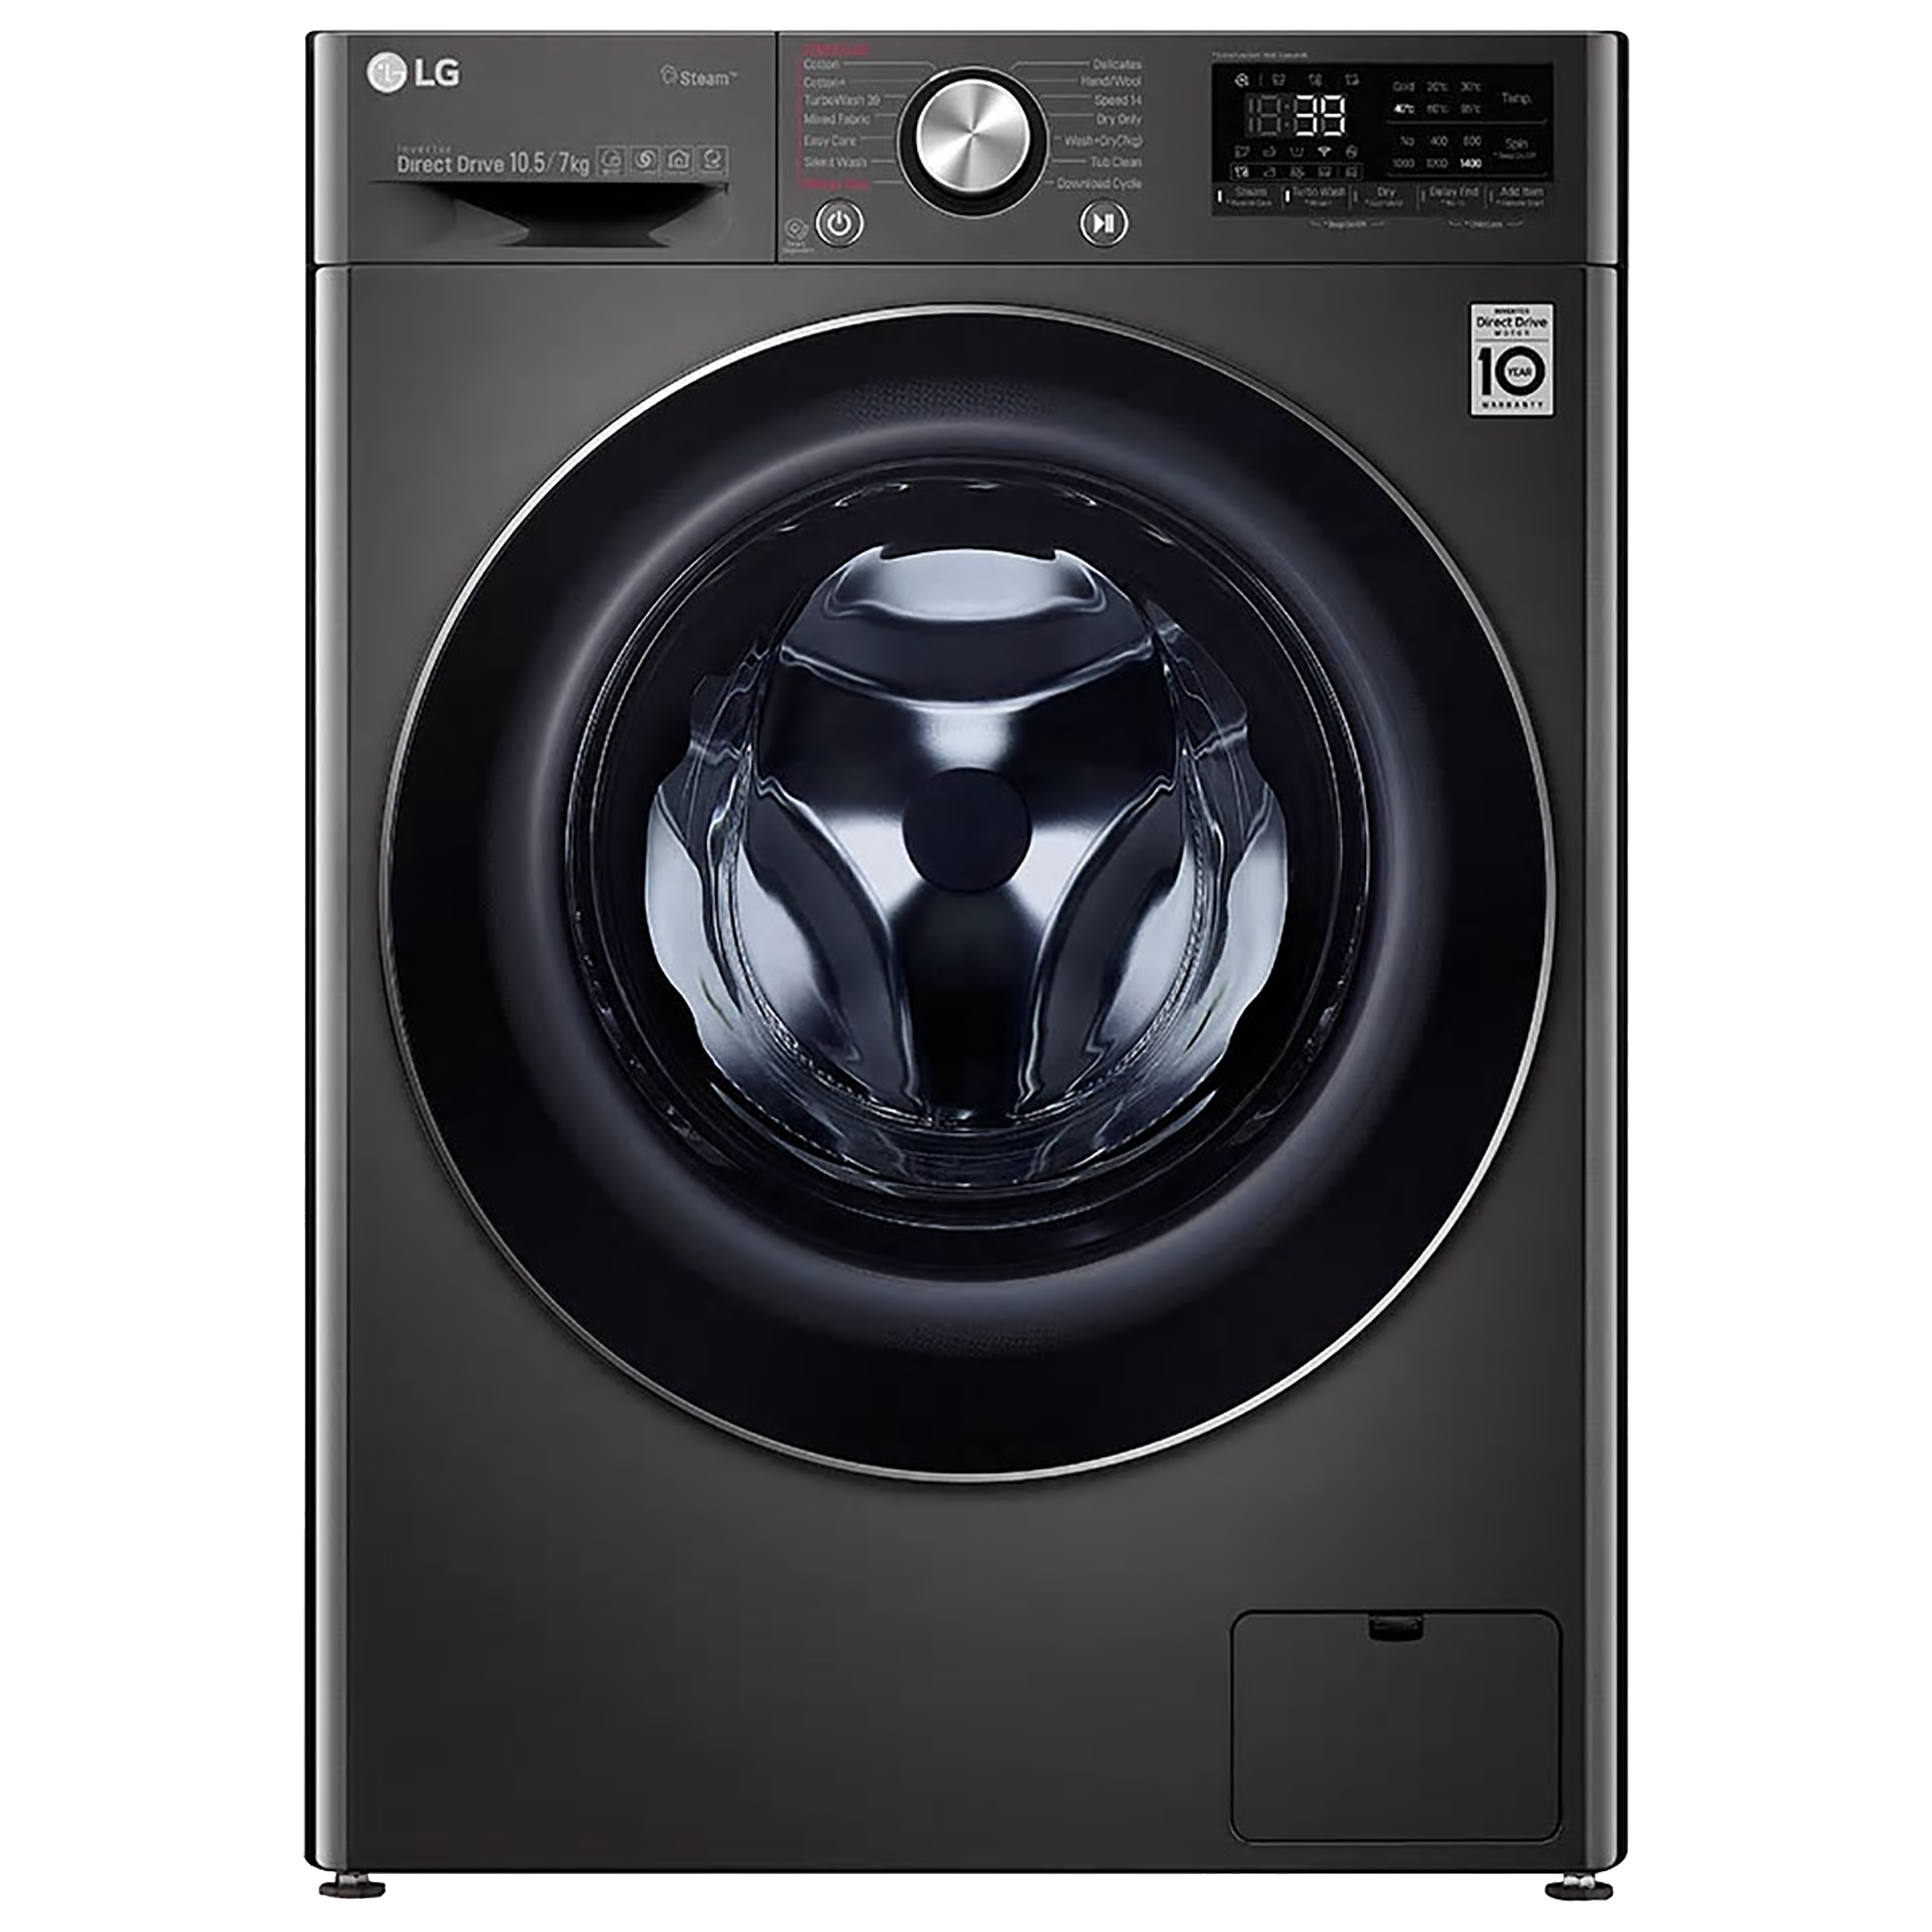 LG 10.5 kg/7 kg Fully Automatic Front Load Washer Dryer Combo (Steam Plus, FHD1057STB.ABLPEIL, Black VCM)_1